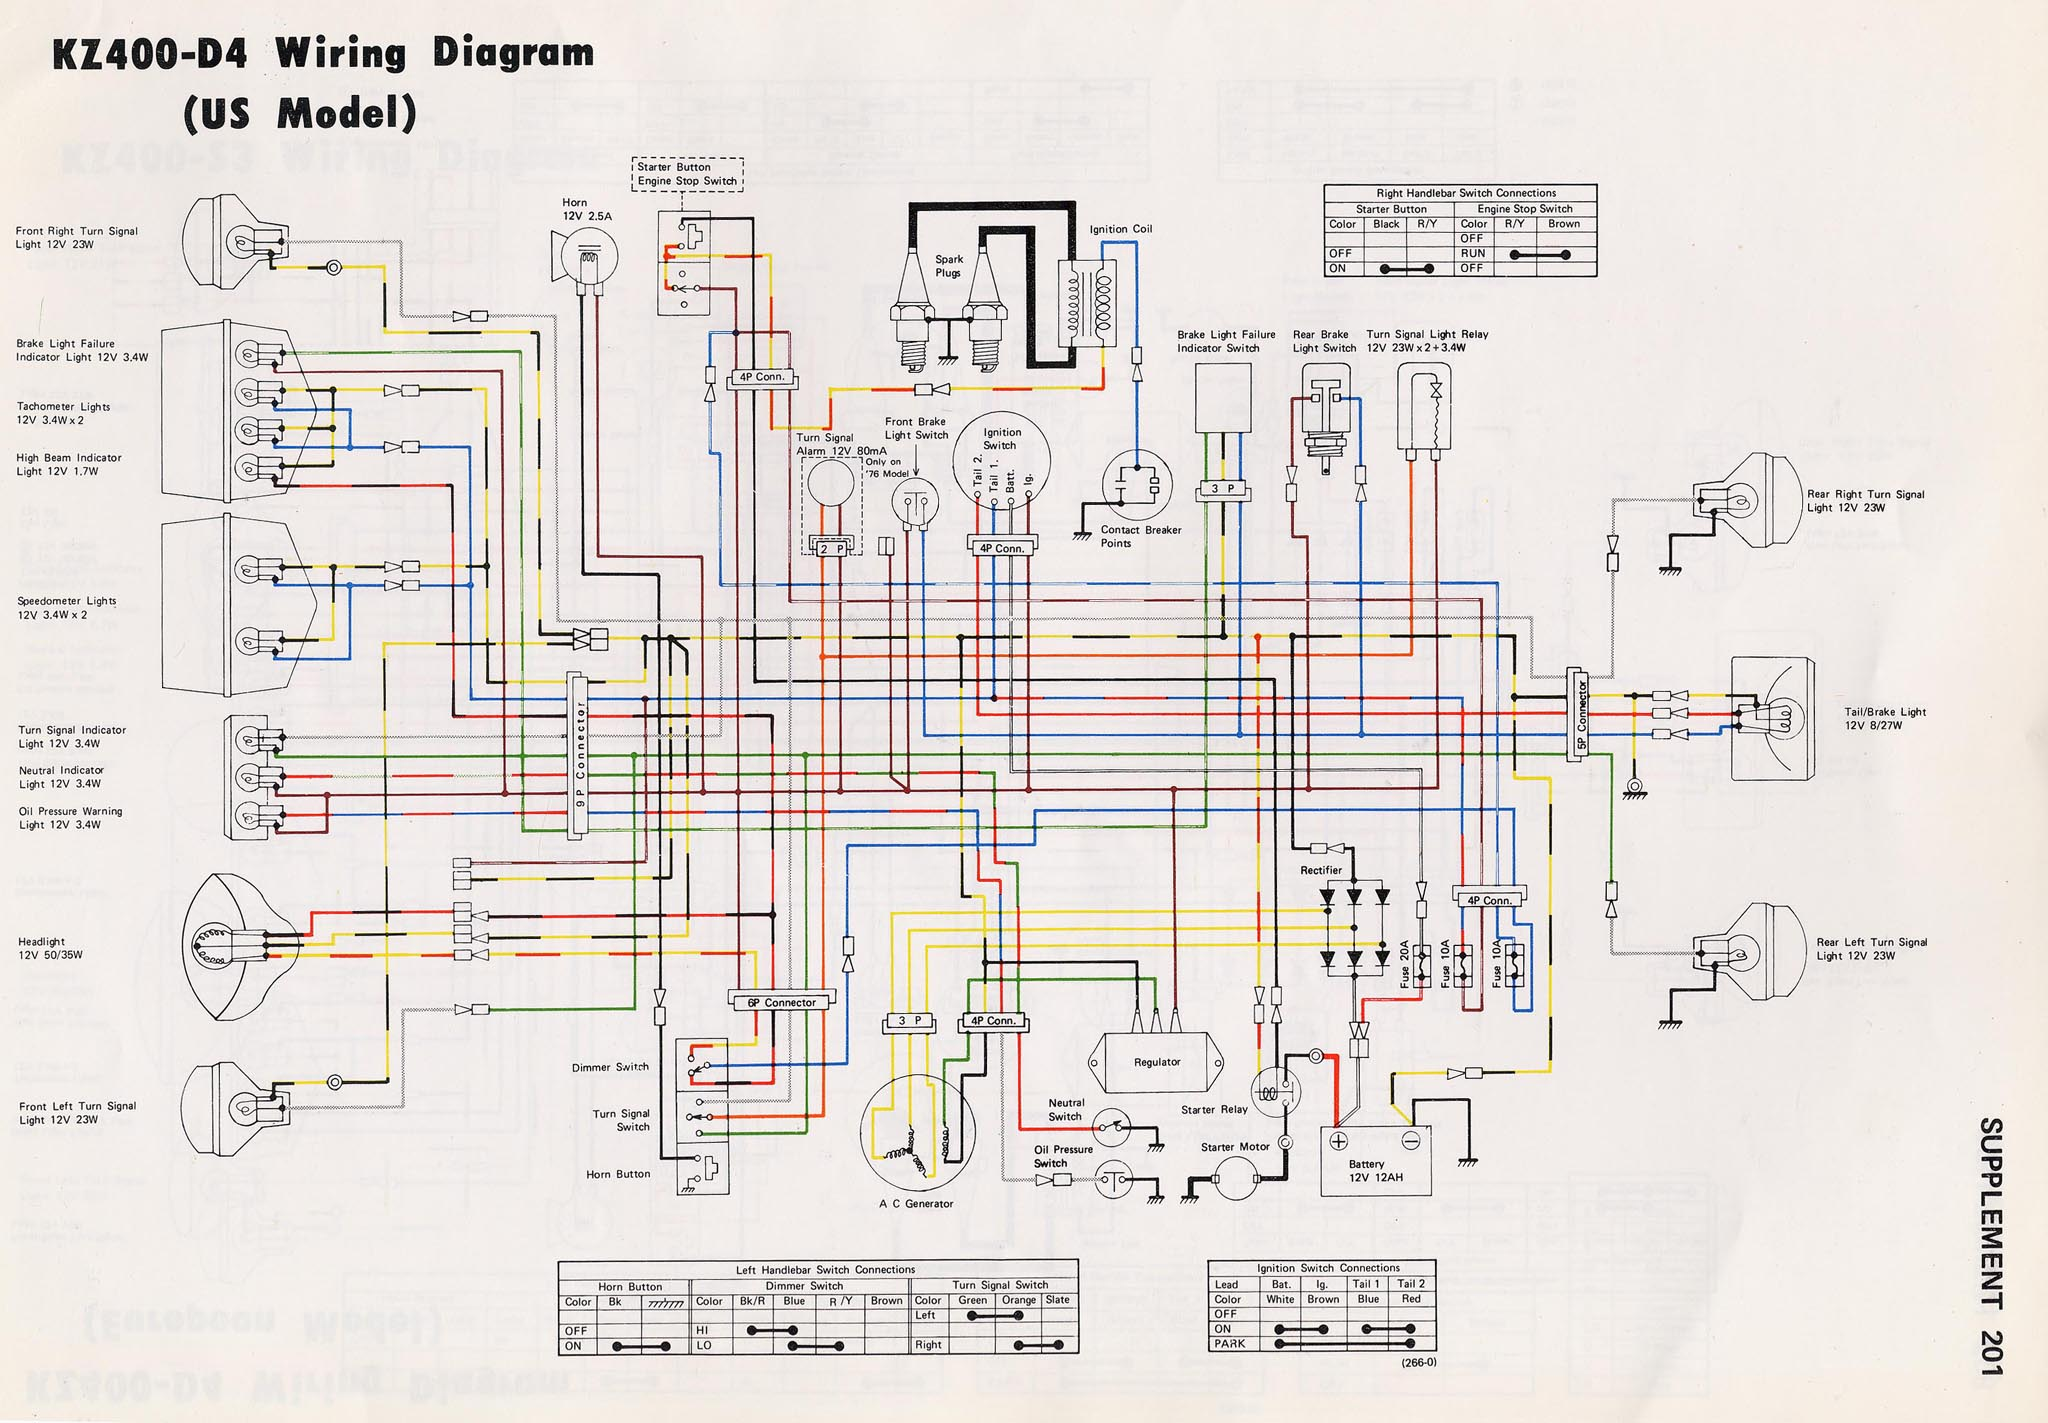 kz200 wiring diagram exclusive circuit wiring diagram u2022 rh internationalsportsoutlet co 1978 kawasaki ke100 wiring diagram 1978 kawasaki z1r wiring diagram